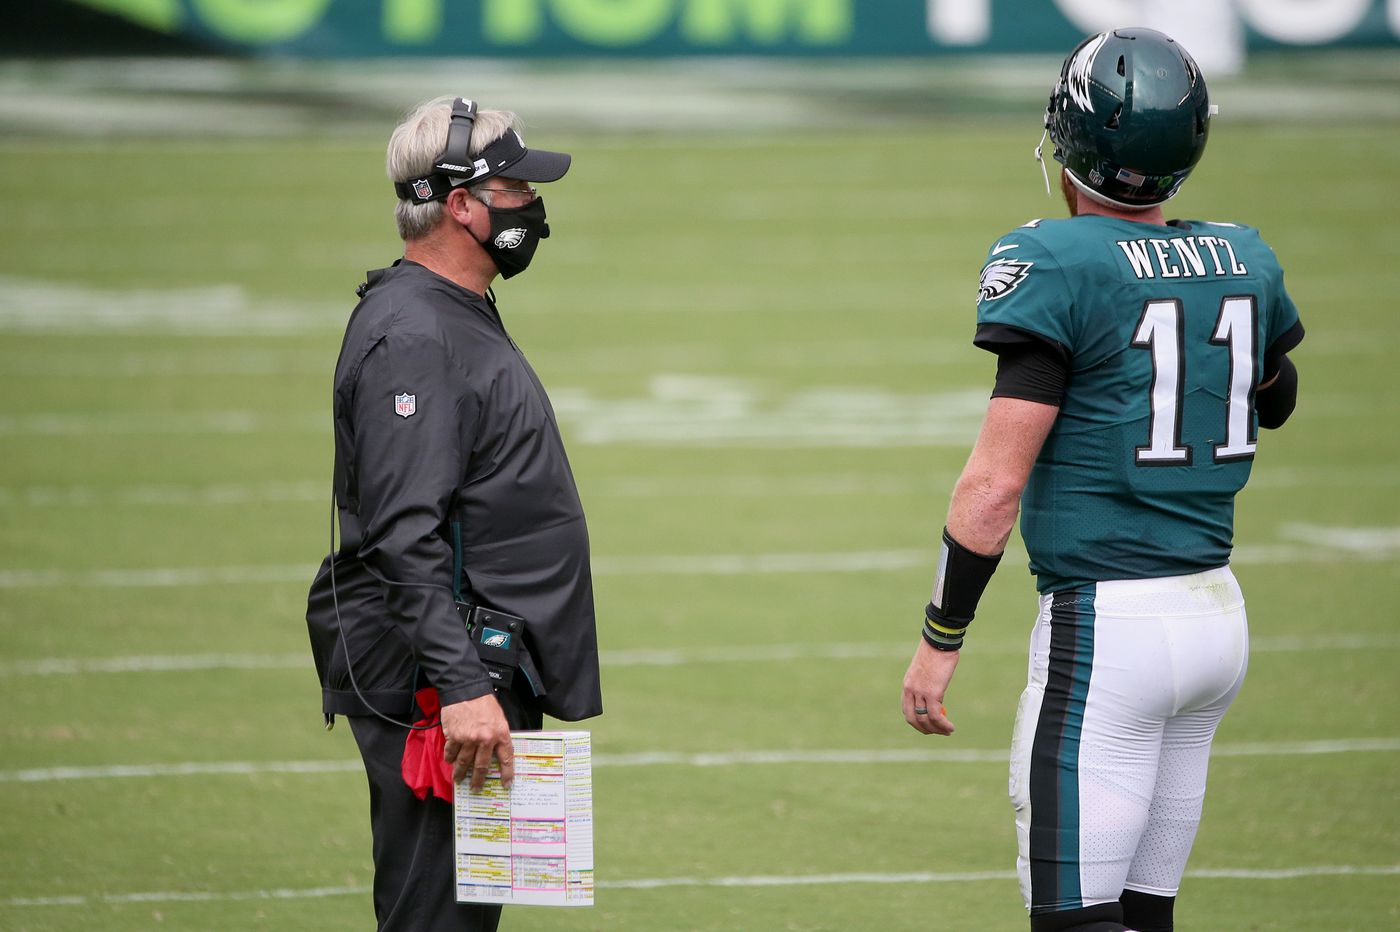 Eagles' Doug Pederson talks of going back to basics with Carson Wentz, and that punt? Now he gets it.